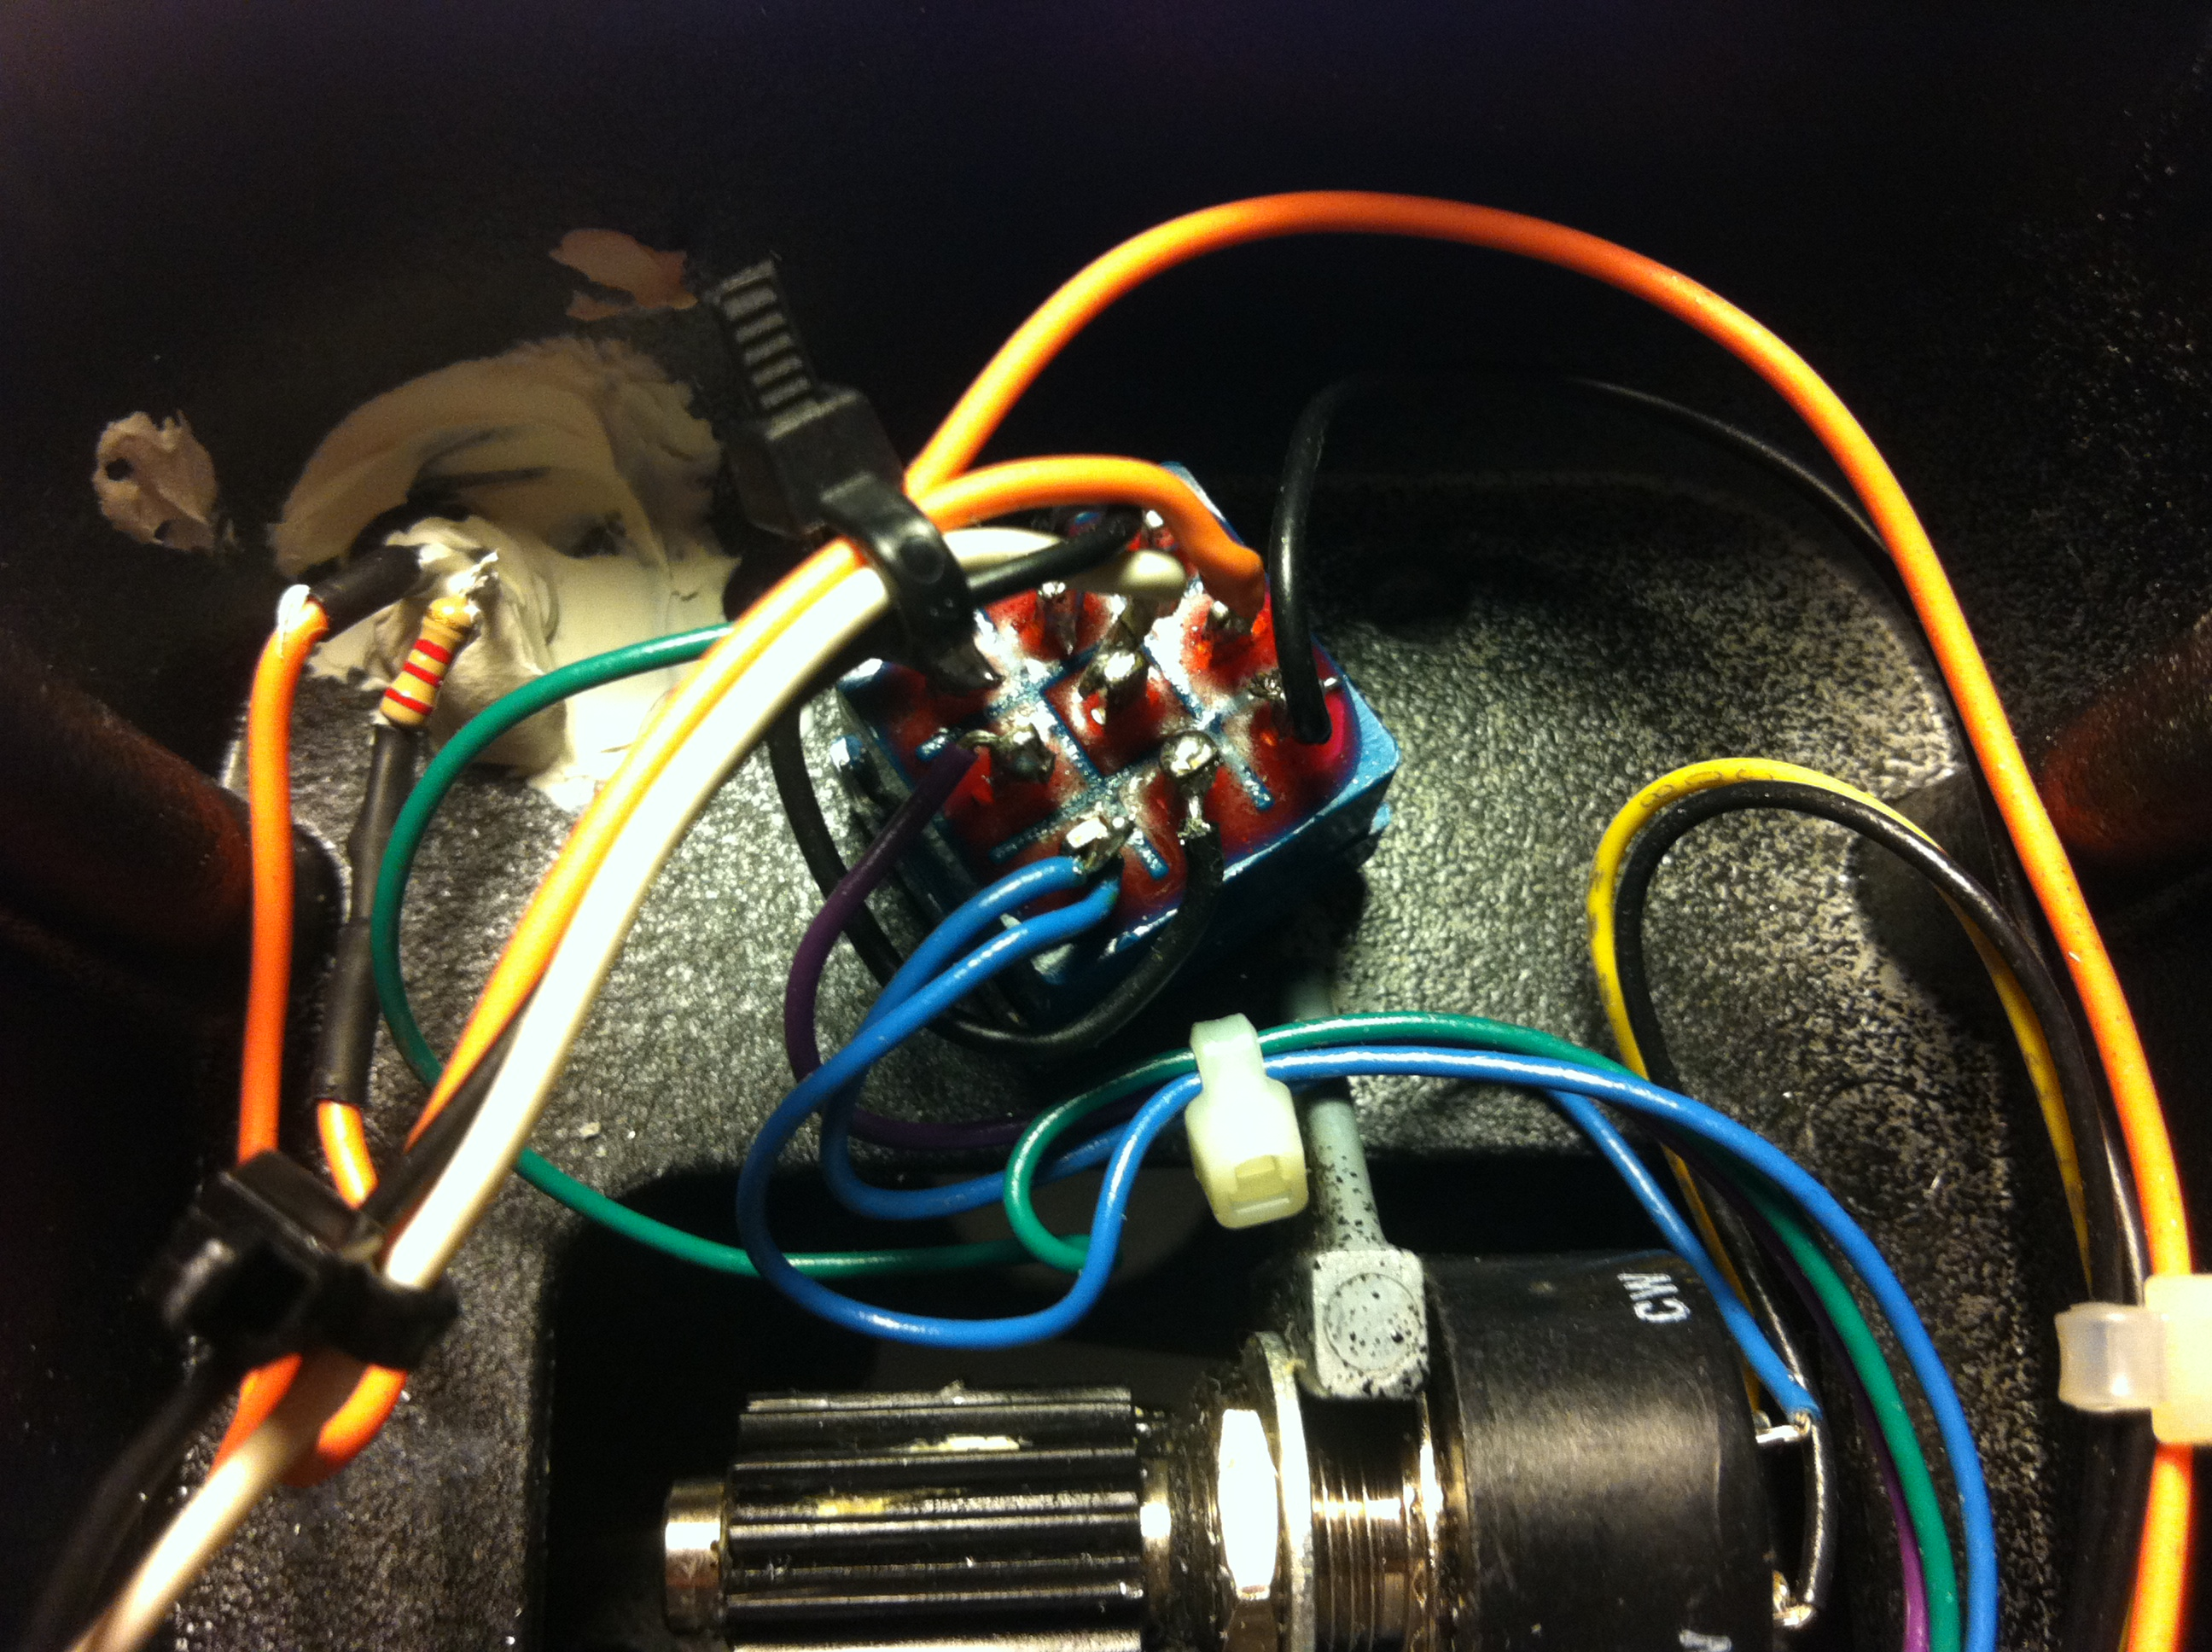 Convert Crybaby Wah Pedal To True Bypass Daniele Turani 3pdt Wiring Diagram Switch Installed